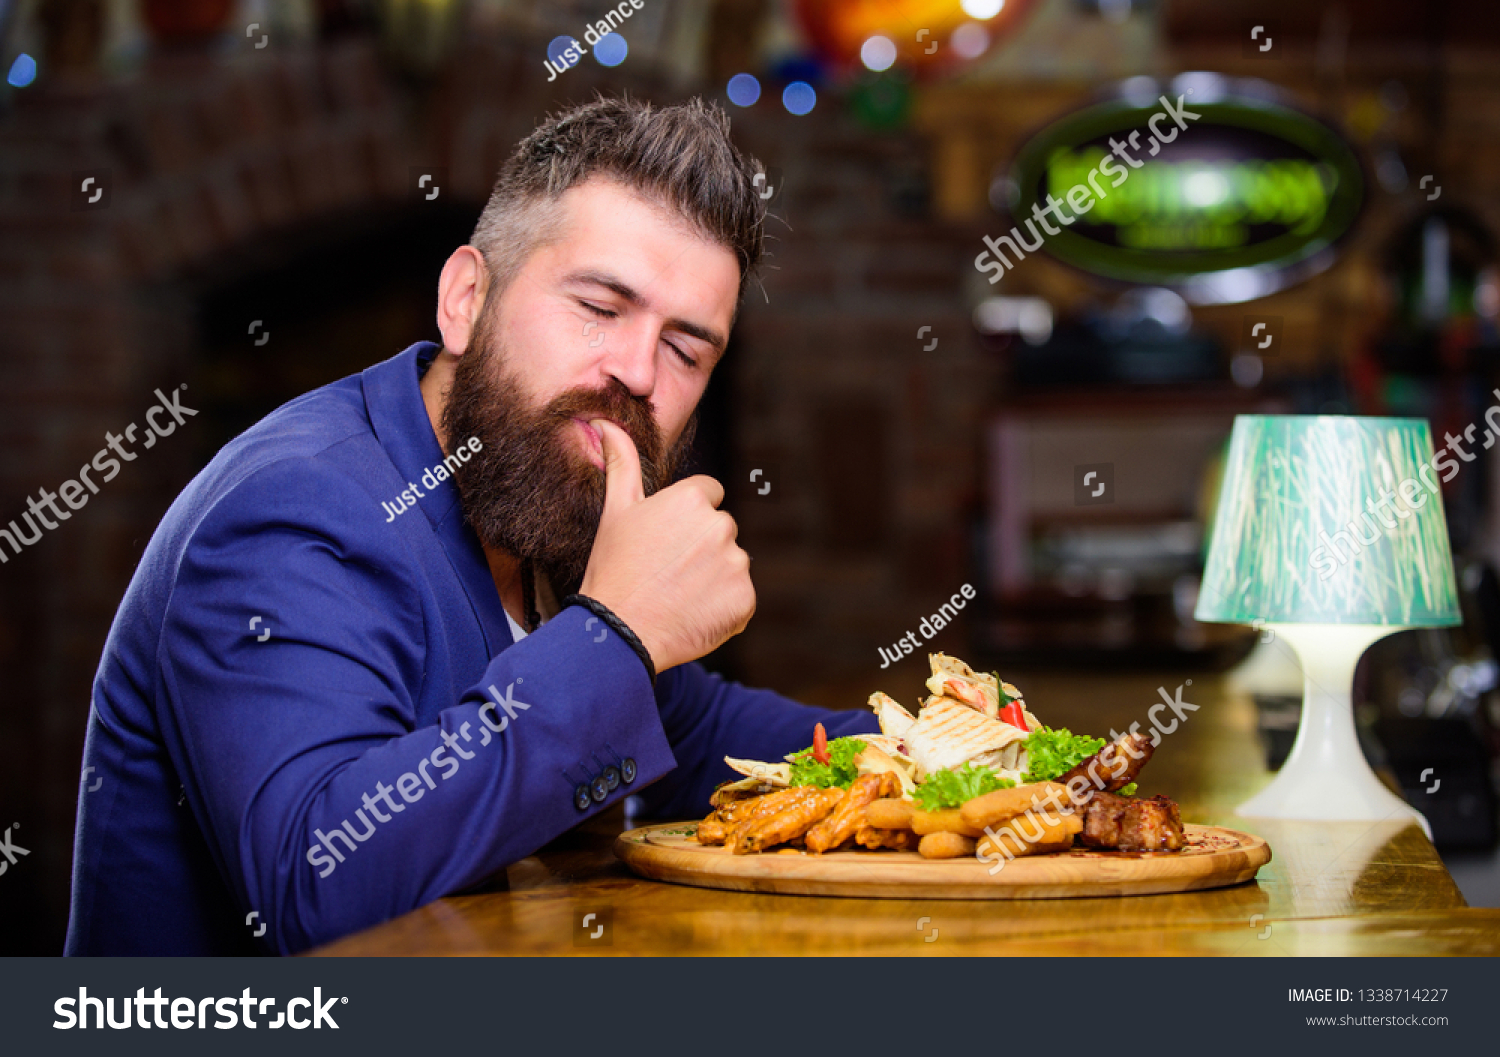 Businessman formal suit sit at restaurant. Man received meal with fried potato fish sticks meat. He deserve delicious meal. Enjoy your meal. High calorie snack. Delicious food. Relax after hard day.